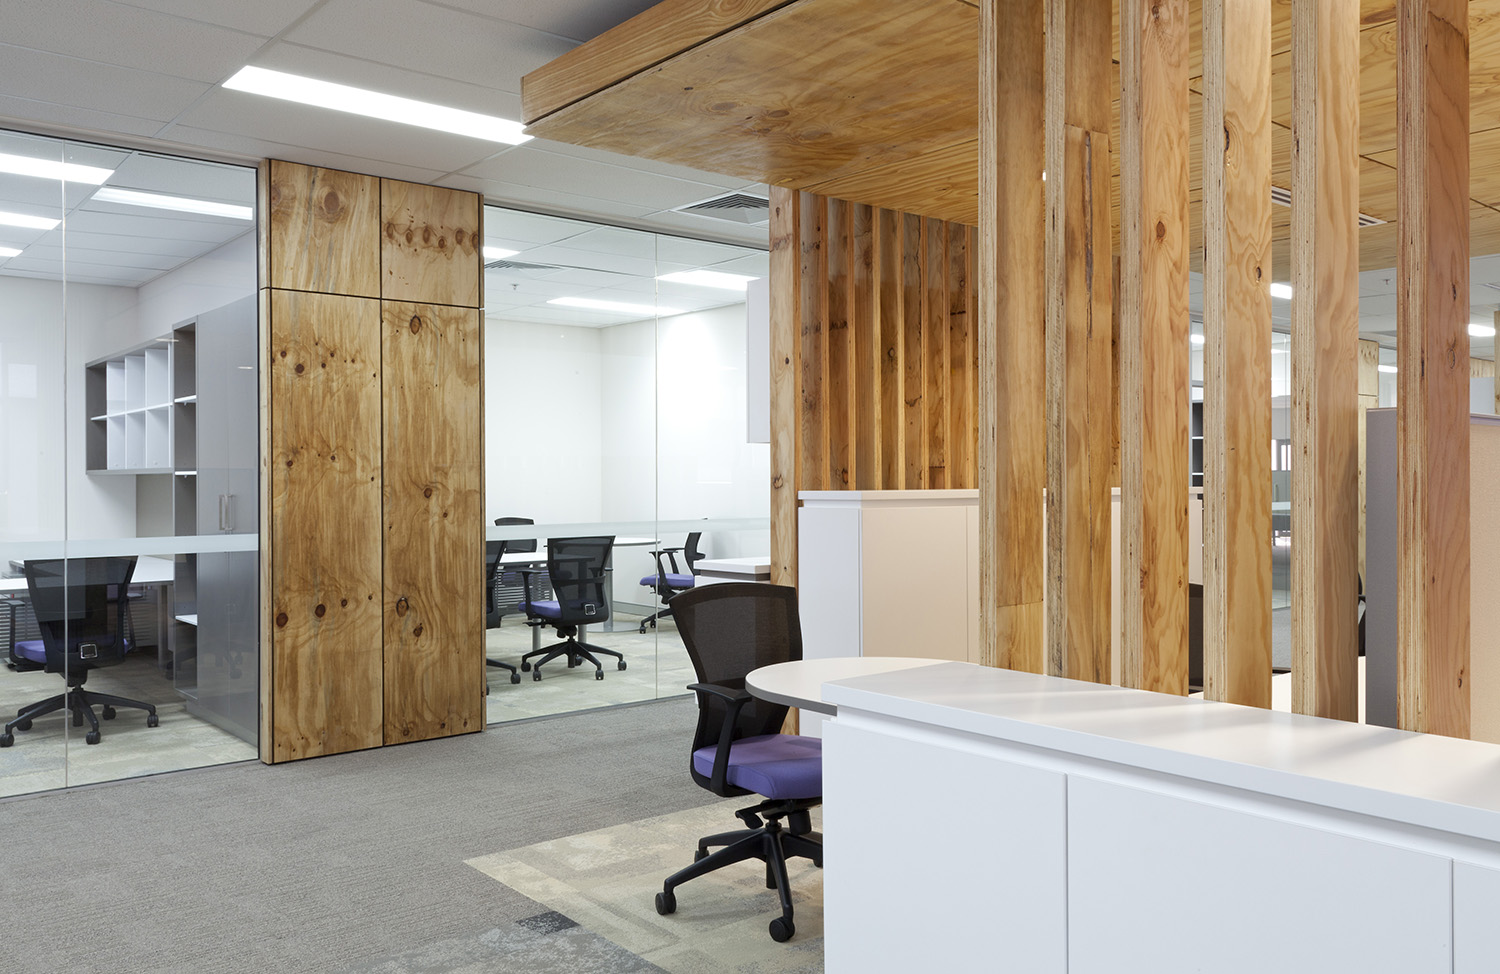 CNH Capital Commercial Offices Meeting Rooms and Office Space Interior Design – Gardner Wetherill GW 1